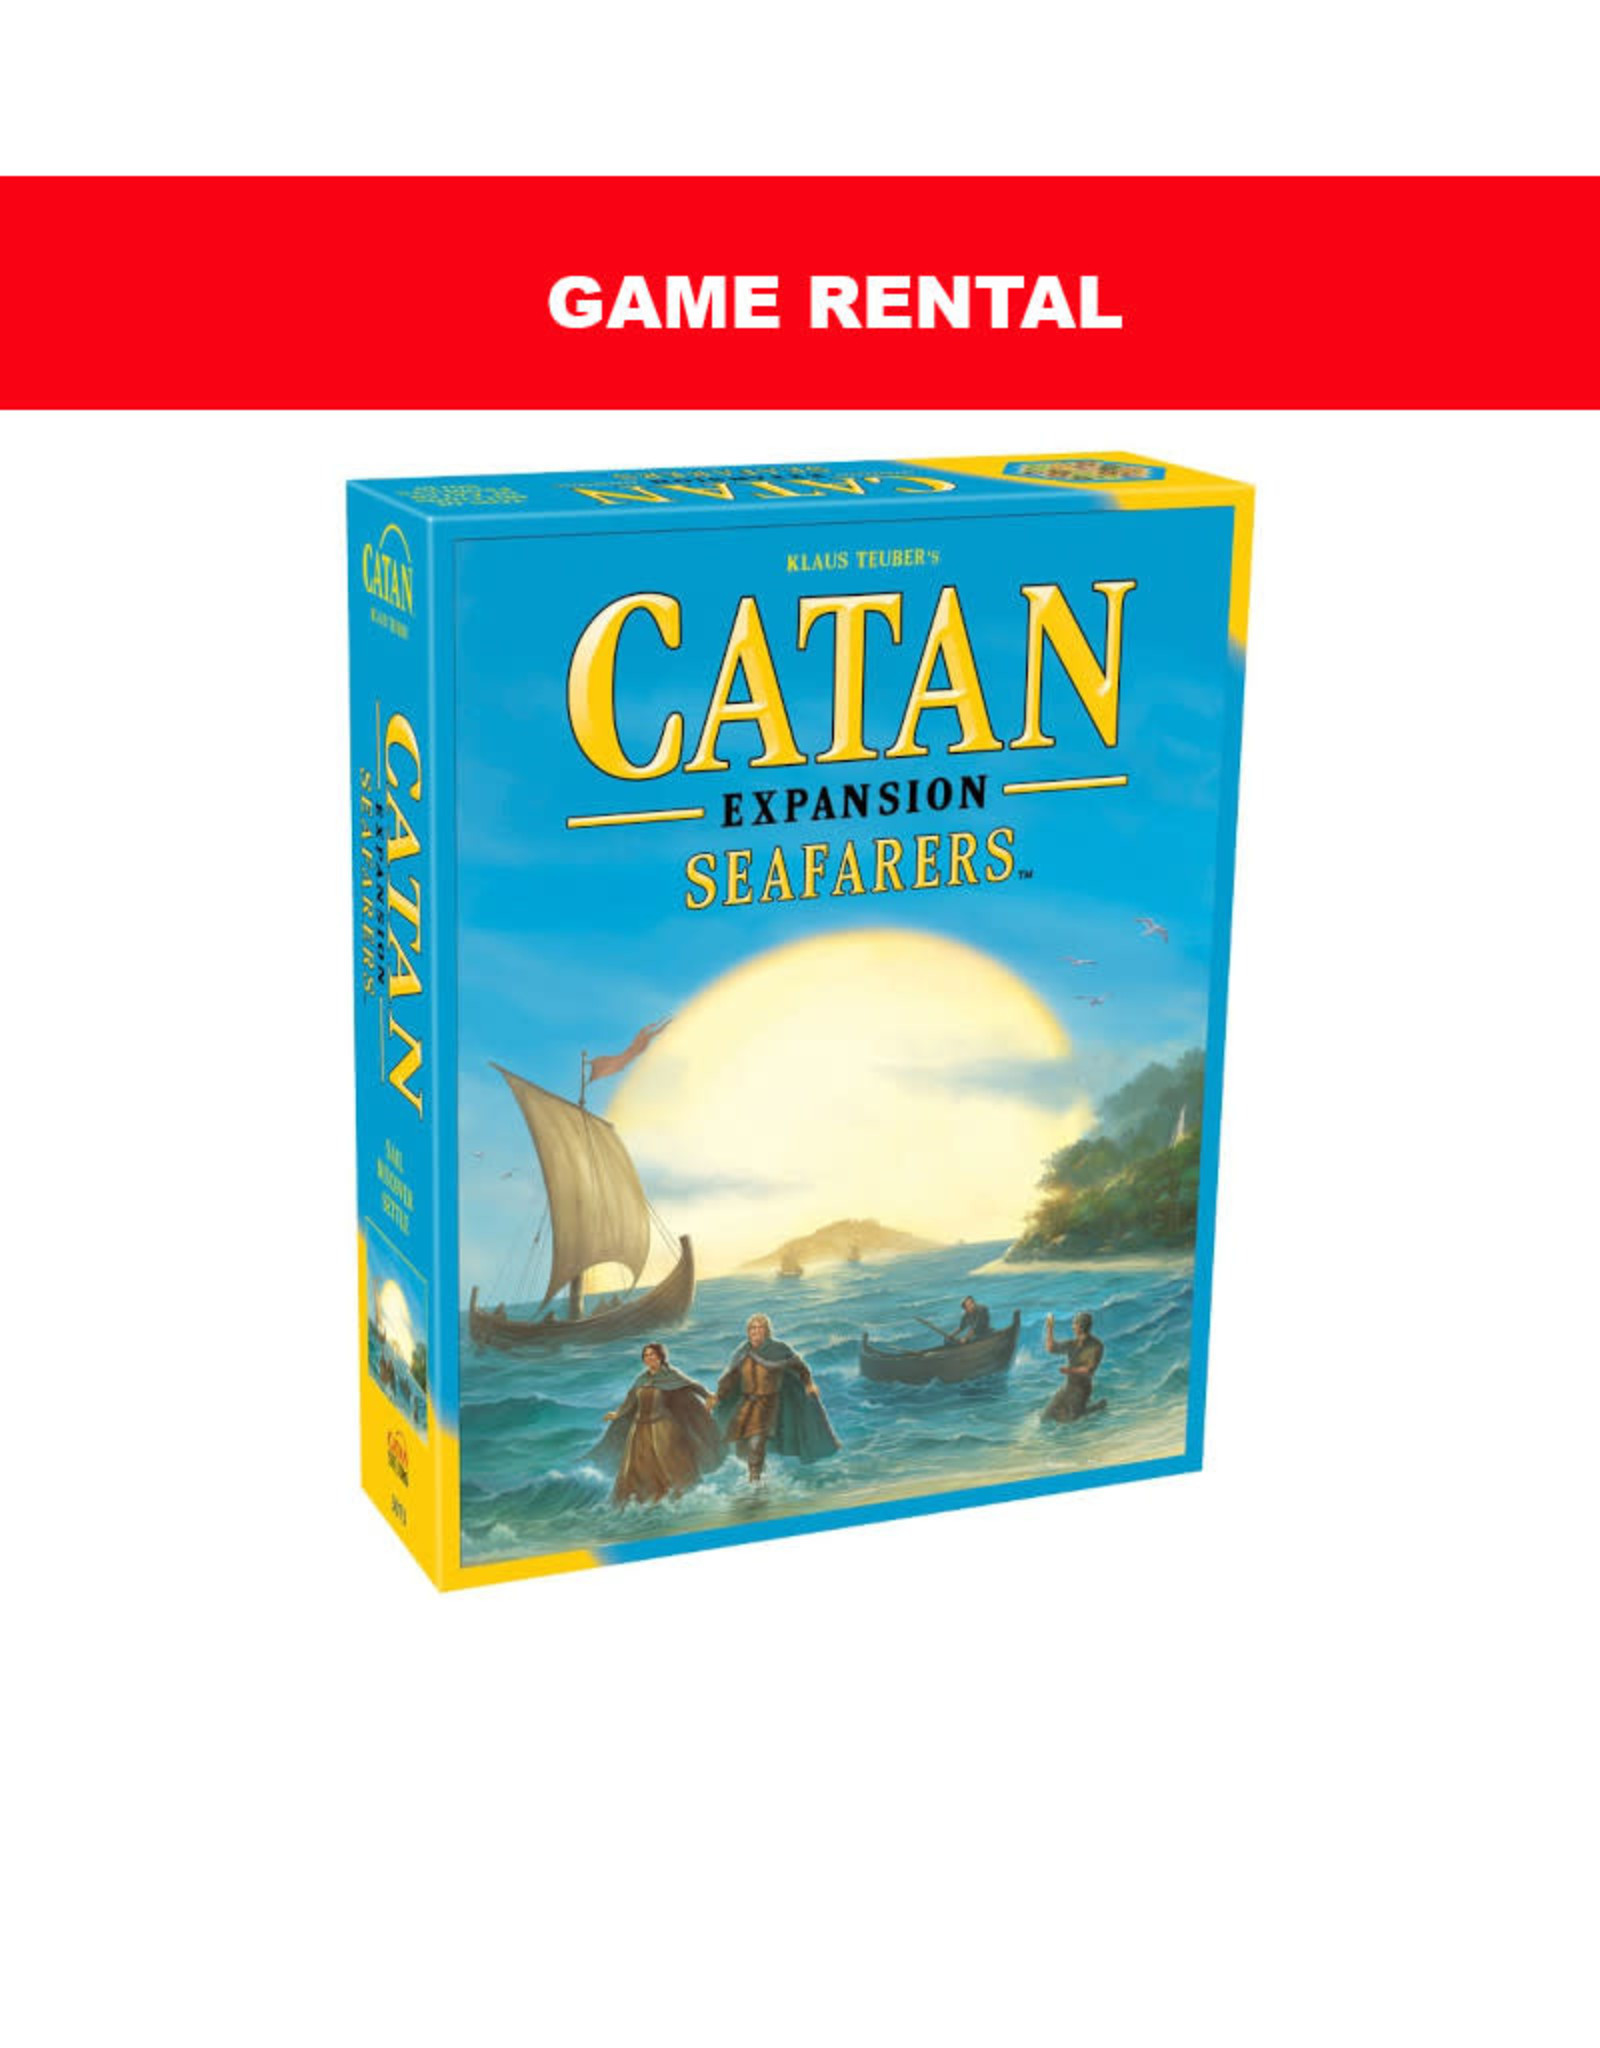 (RENT) Catan Seafarers Expansion for a Day. Love It! Buy It!